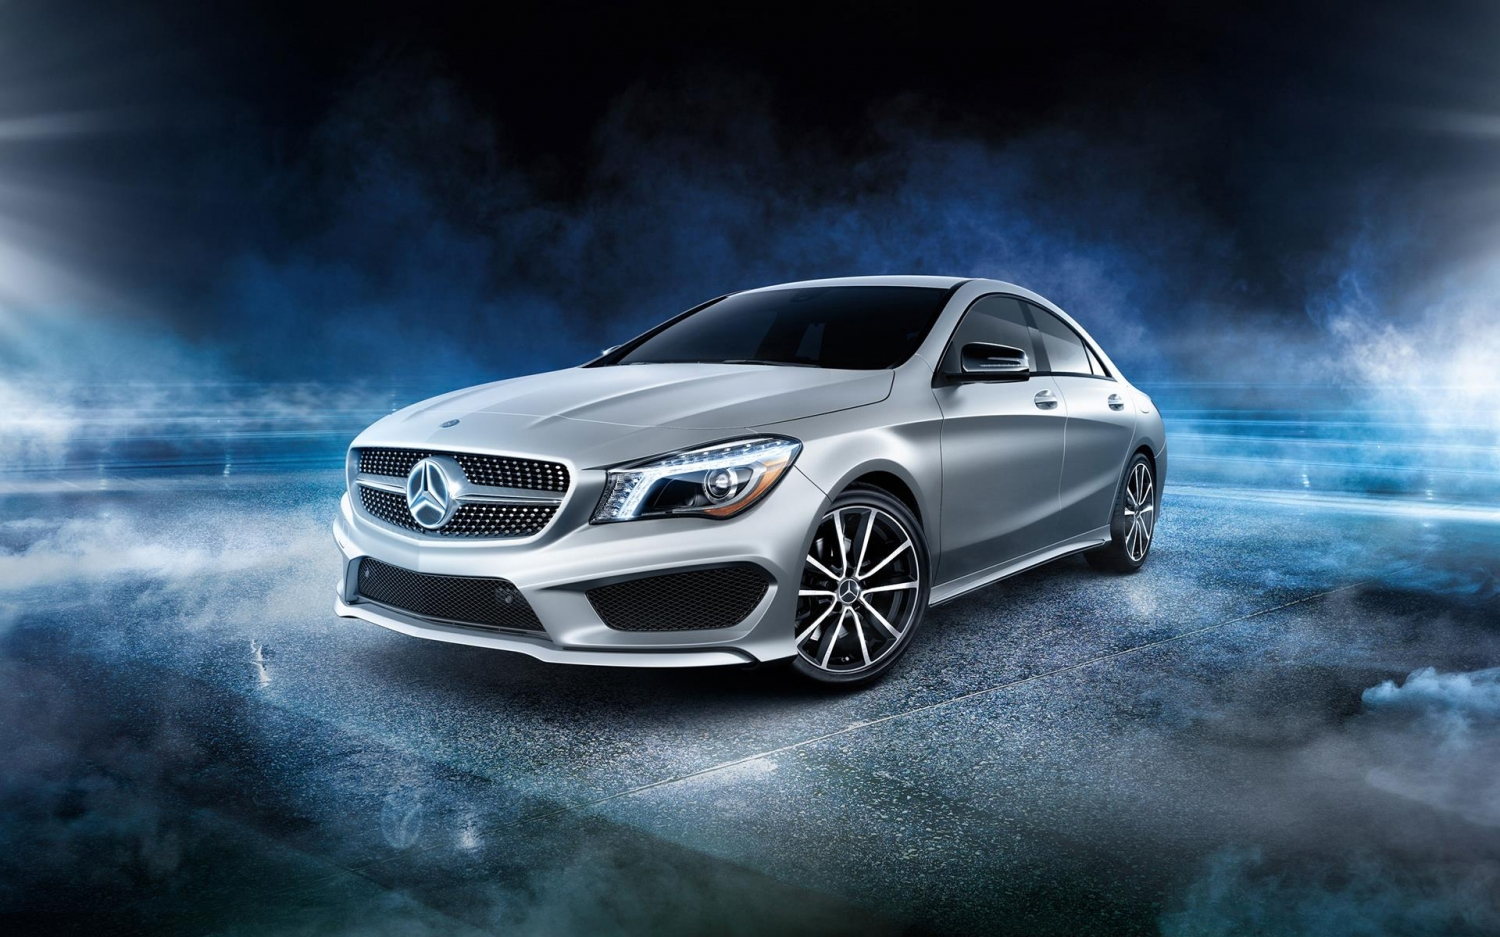 2016 mercedes benz cla class wallpapers hd drivespark. Black Bedroom Furniture Sets. Home Design Ideas